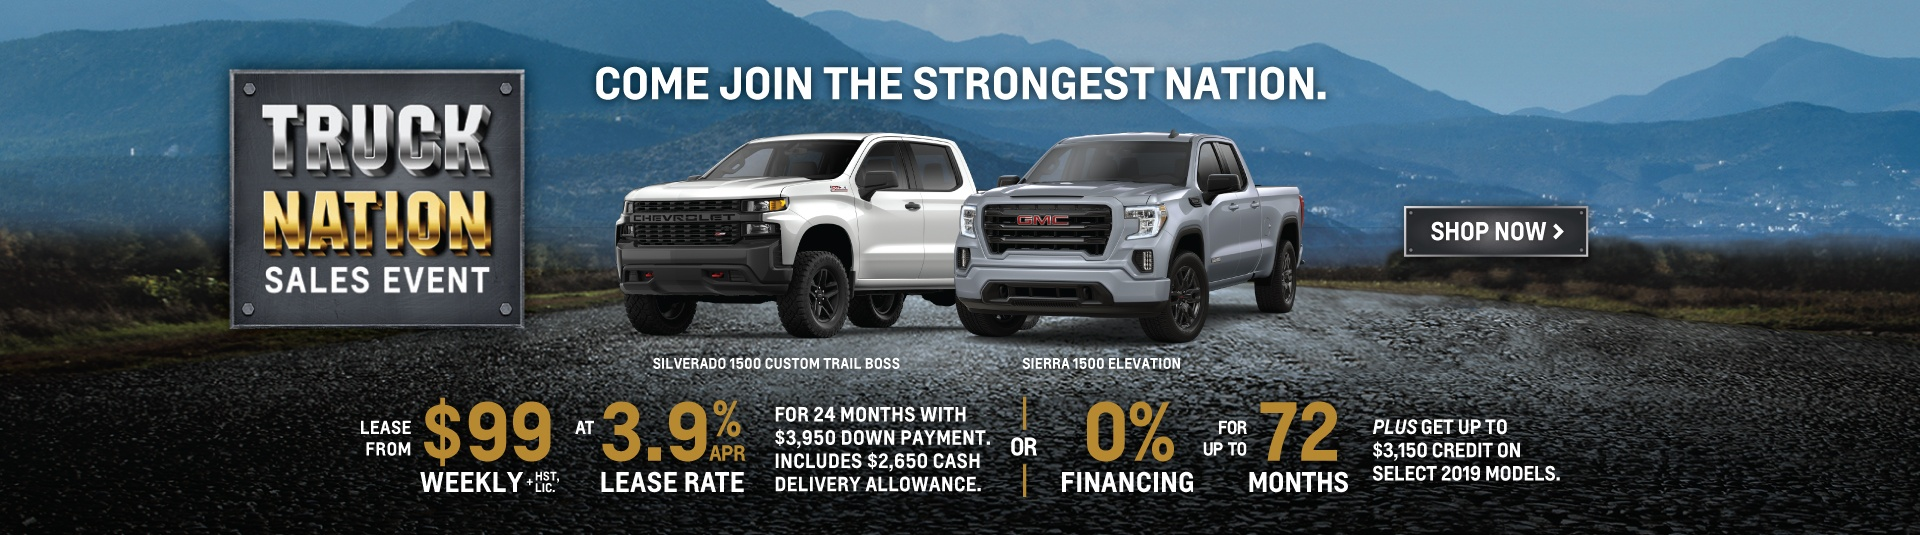 Humberview Chevrolet Buick GMC Truck Nation Promotion in Toronto